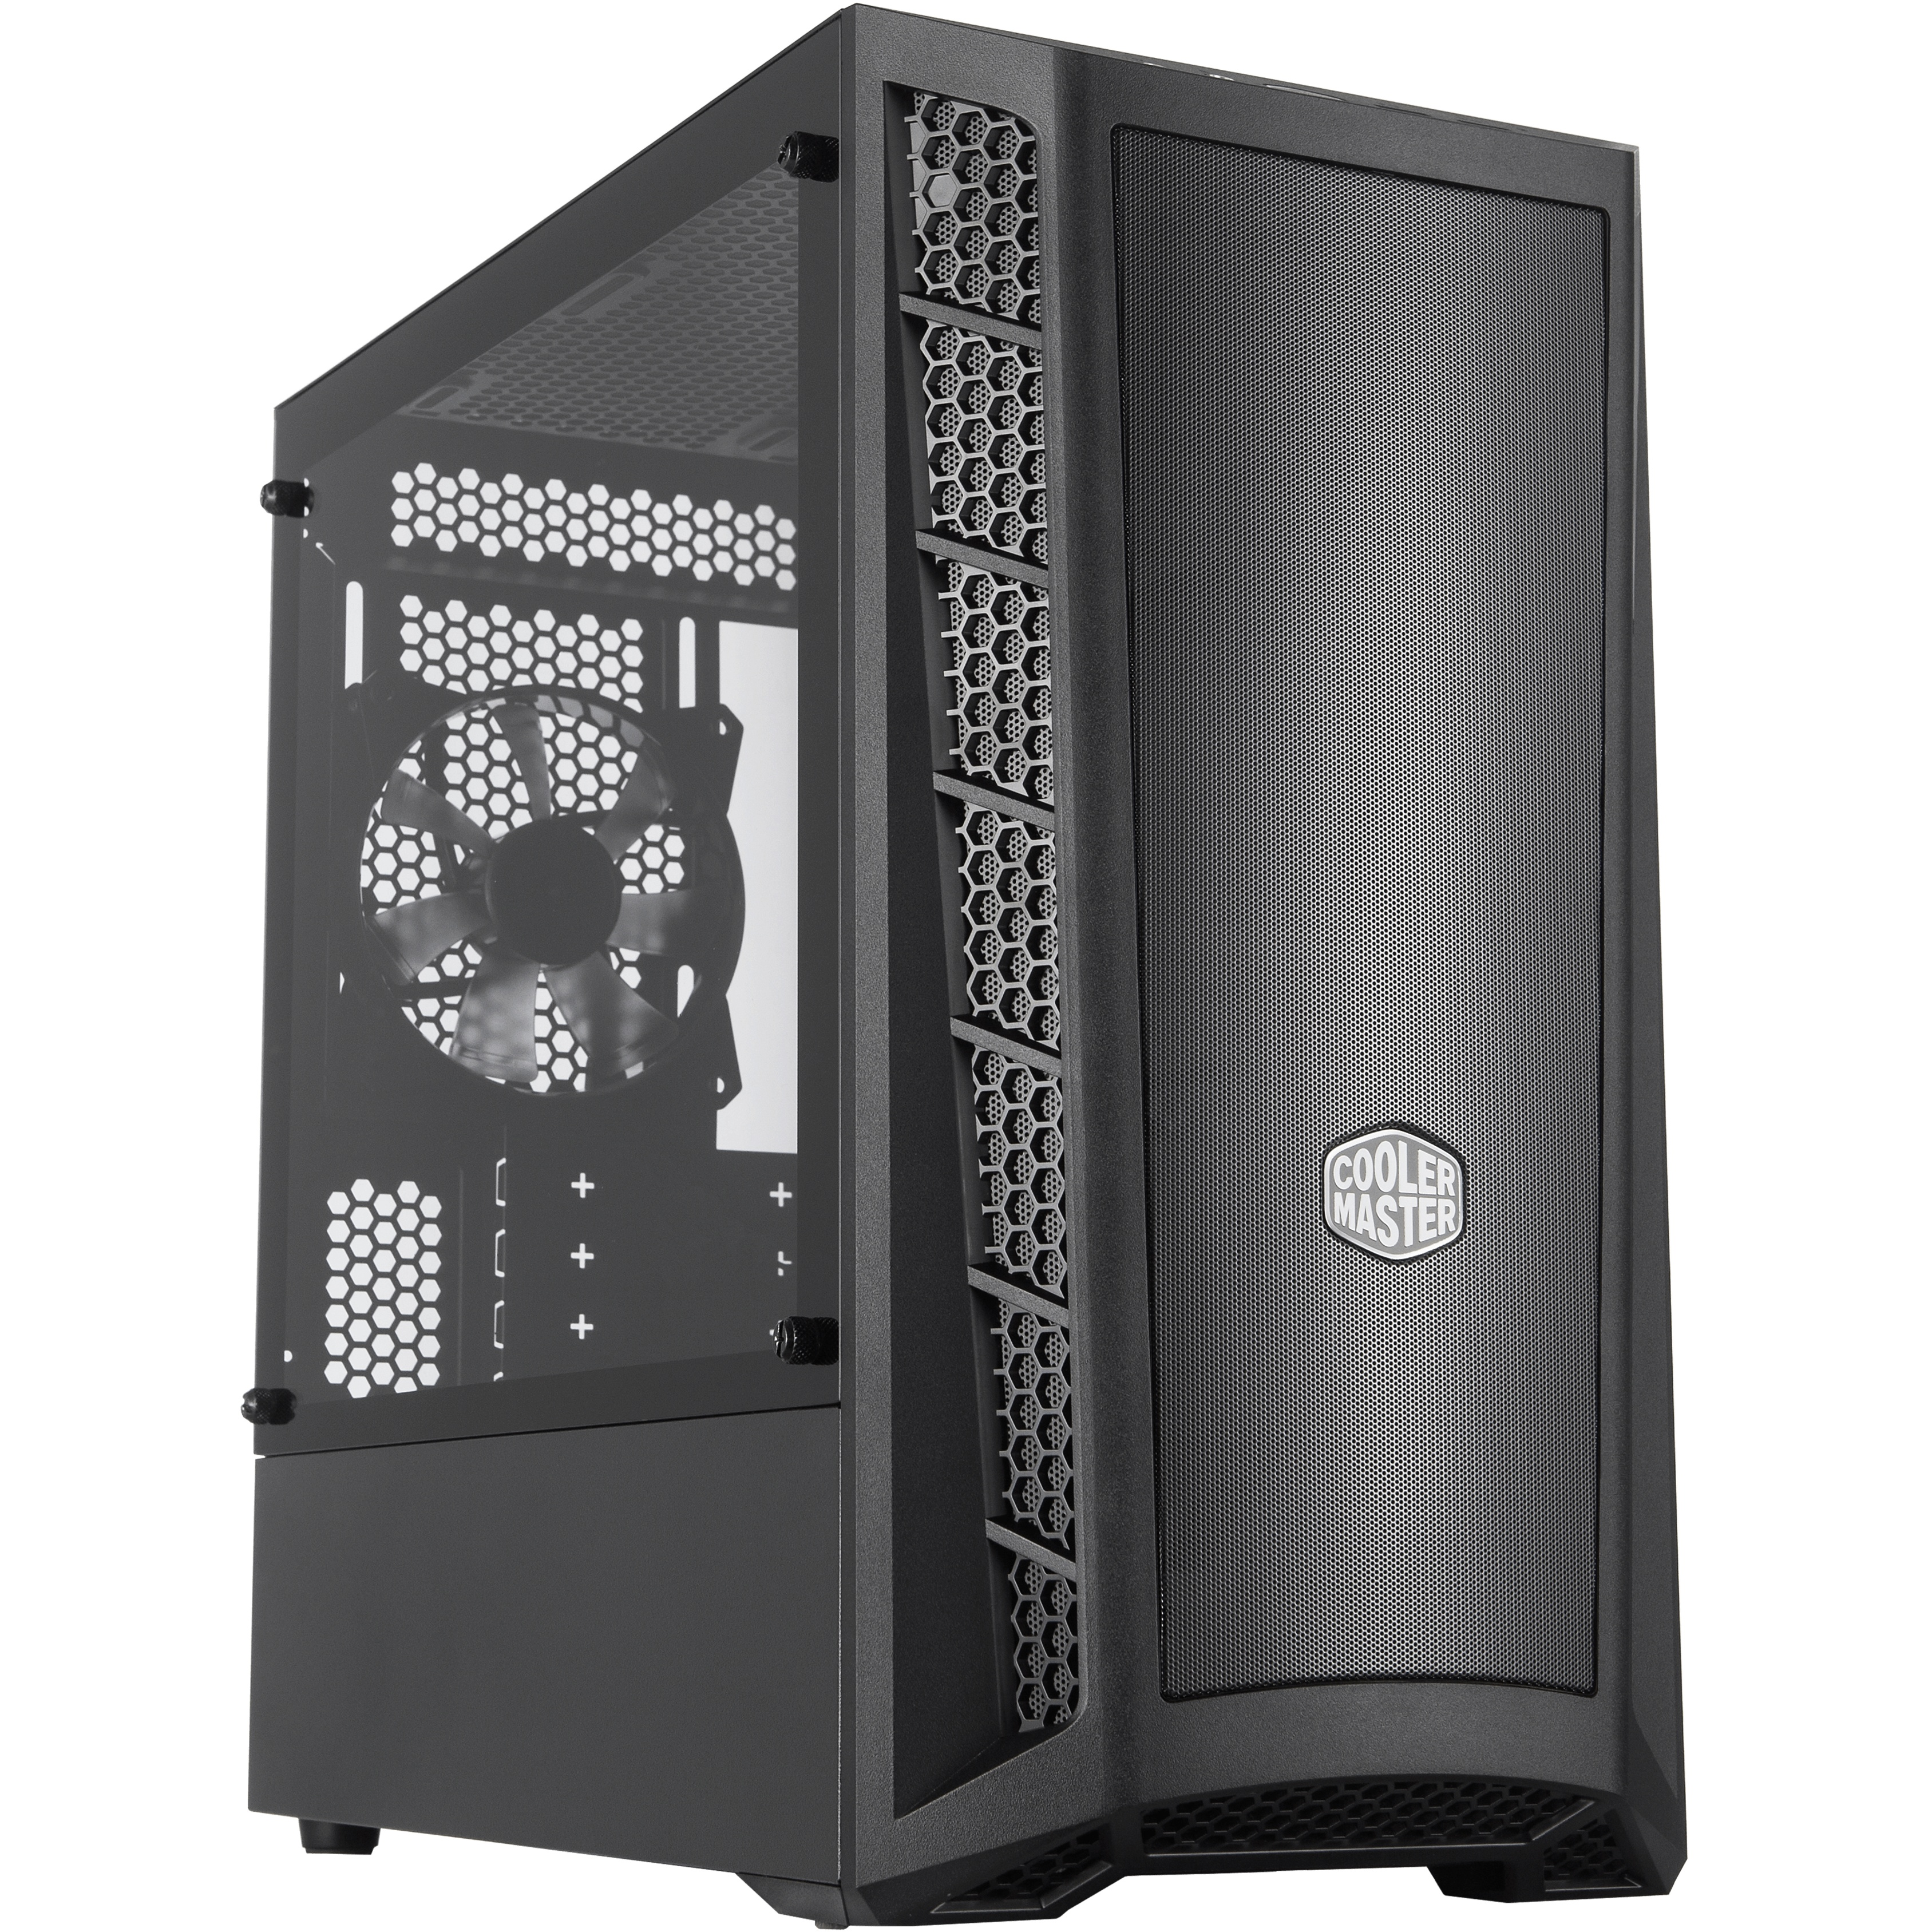 Case masterbox mb311l, 2usb3,audio i&o, 2x combo 2.5/3.5, 2xssd, 120mm rear fan, radiator supported, no psu